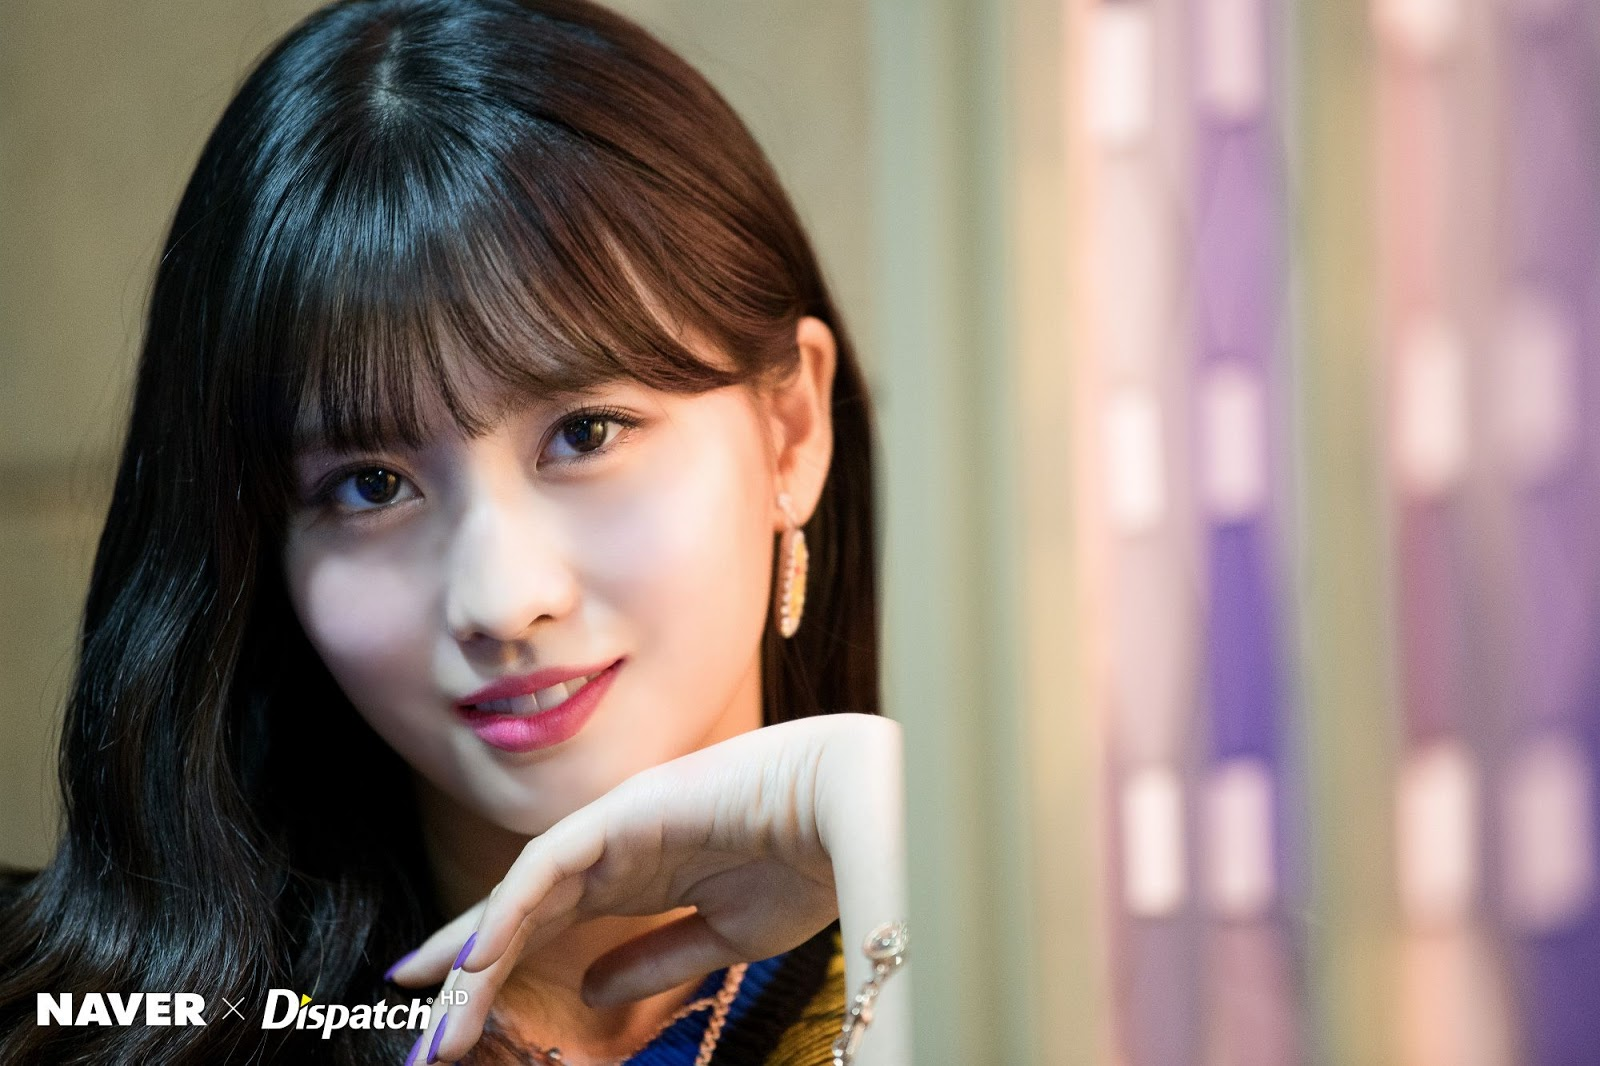 Frequently Got Bad Comments, TWICE's Momo Call Hater Just Envy